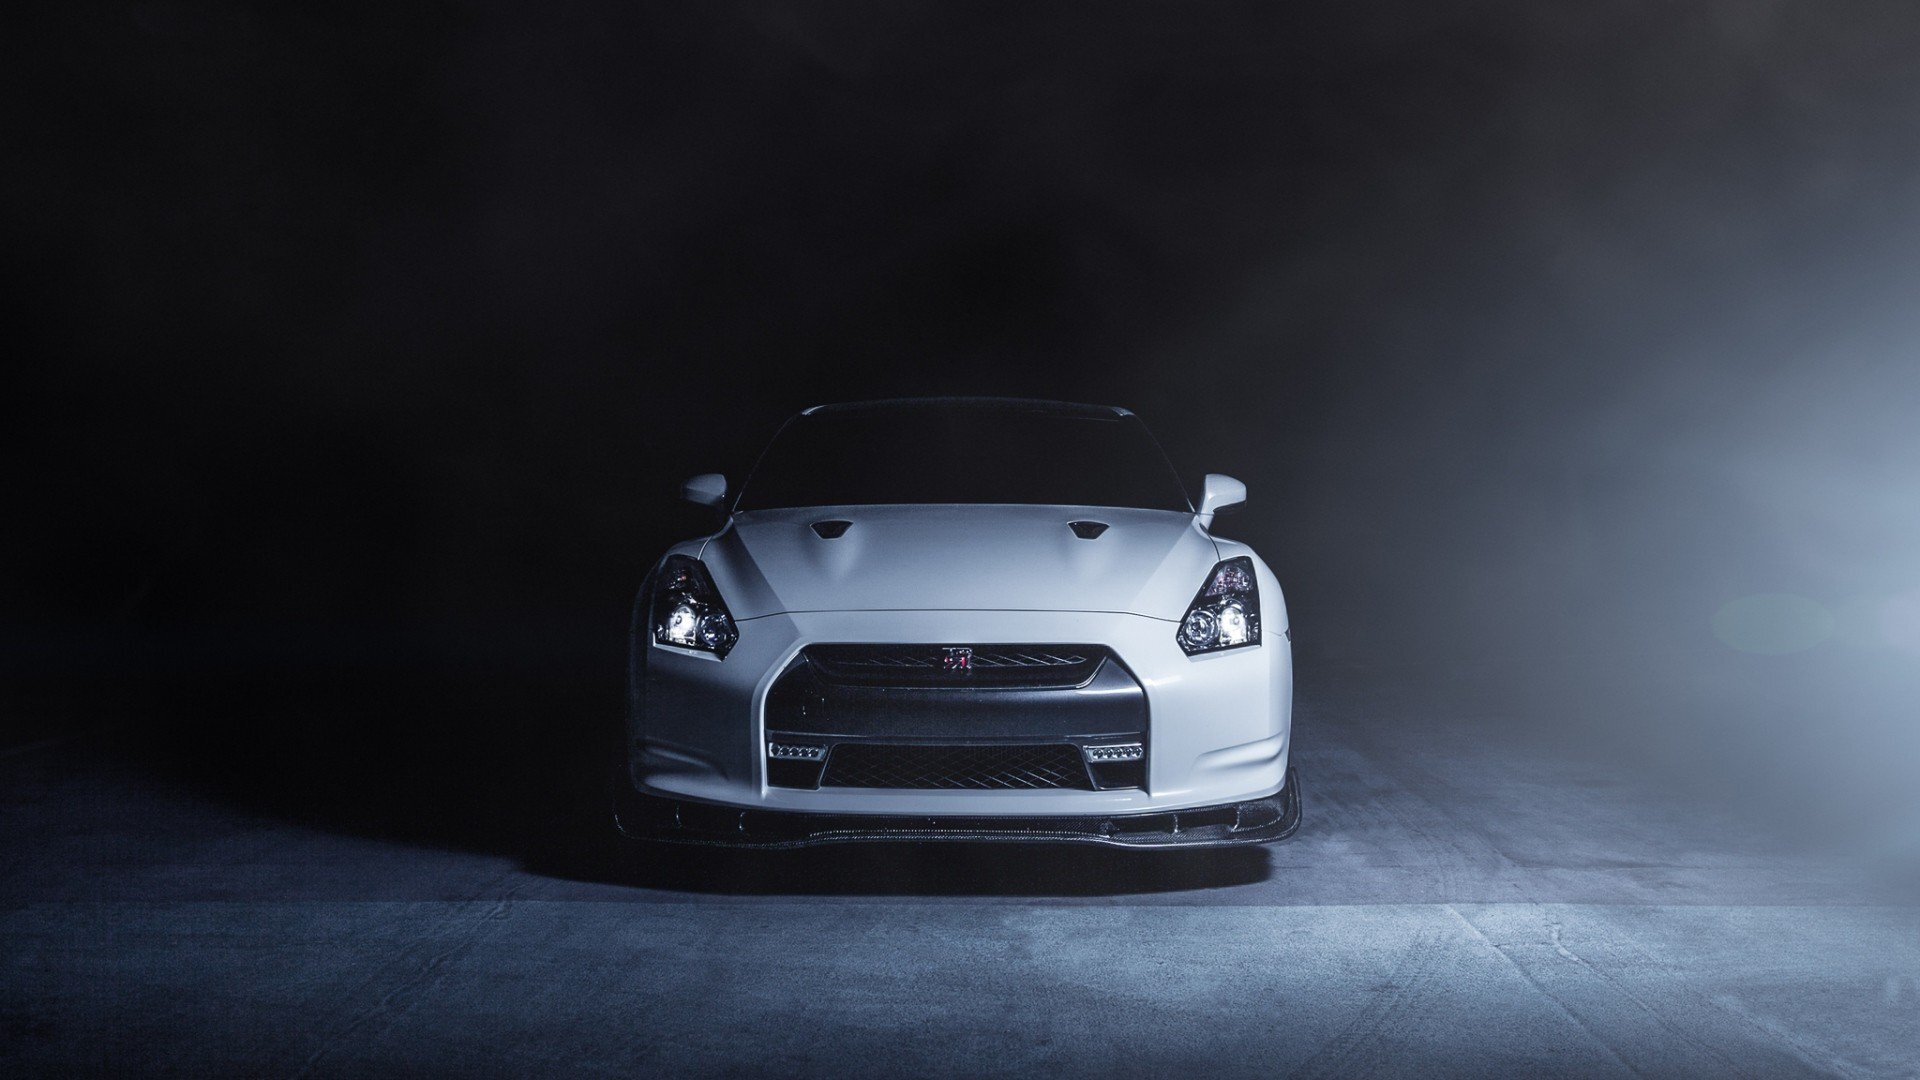 1920x1080 nissan gtr r35 laptop full hd 1080p hd 4k wallpapers images backgrounds photos and - Nissan gtr car wallpaper ...